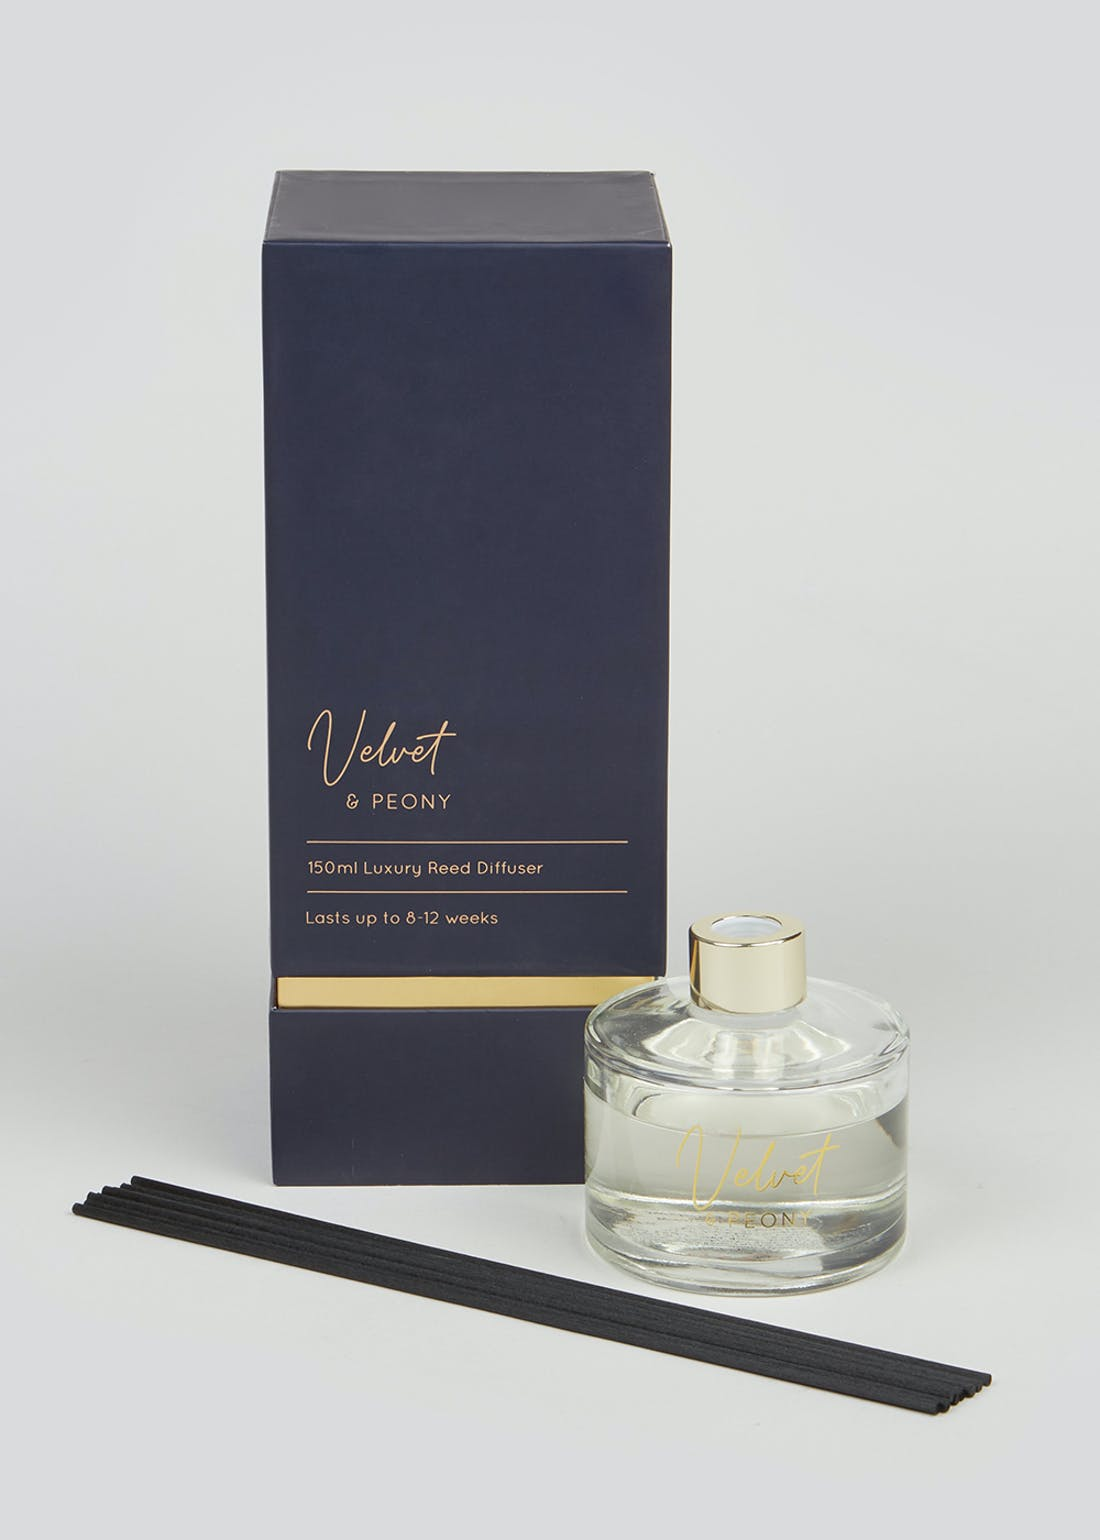 Velvet and Peony Luxury Reed Diffuser (150ml)